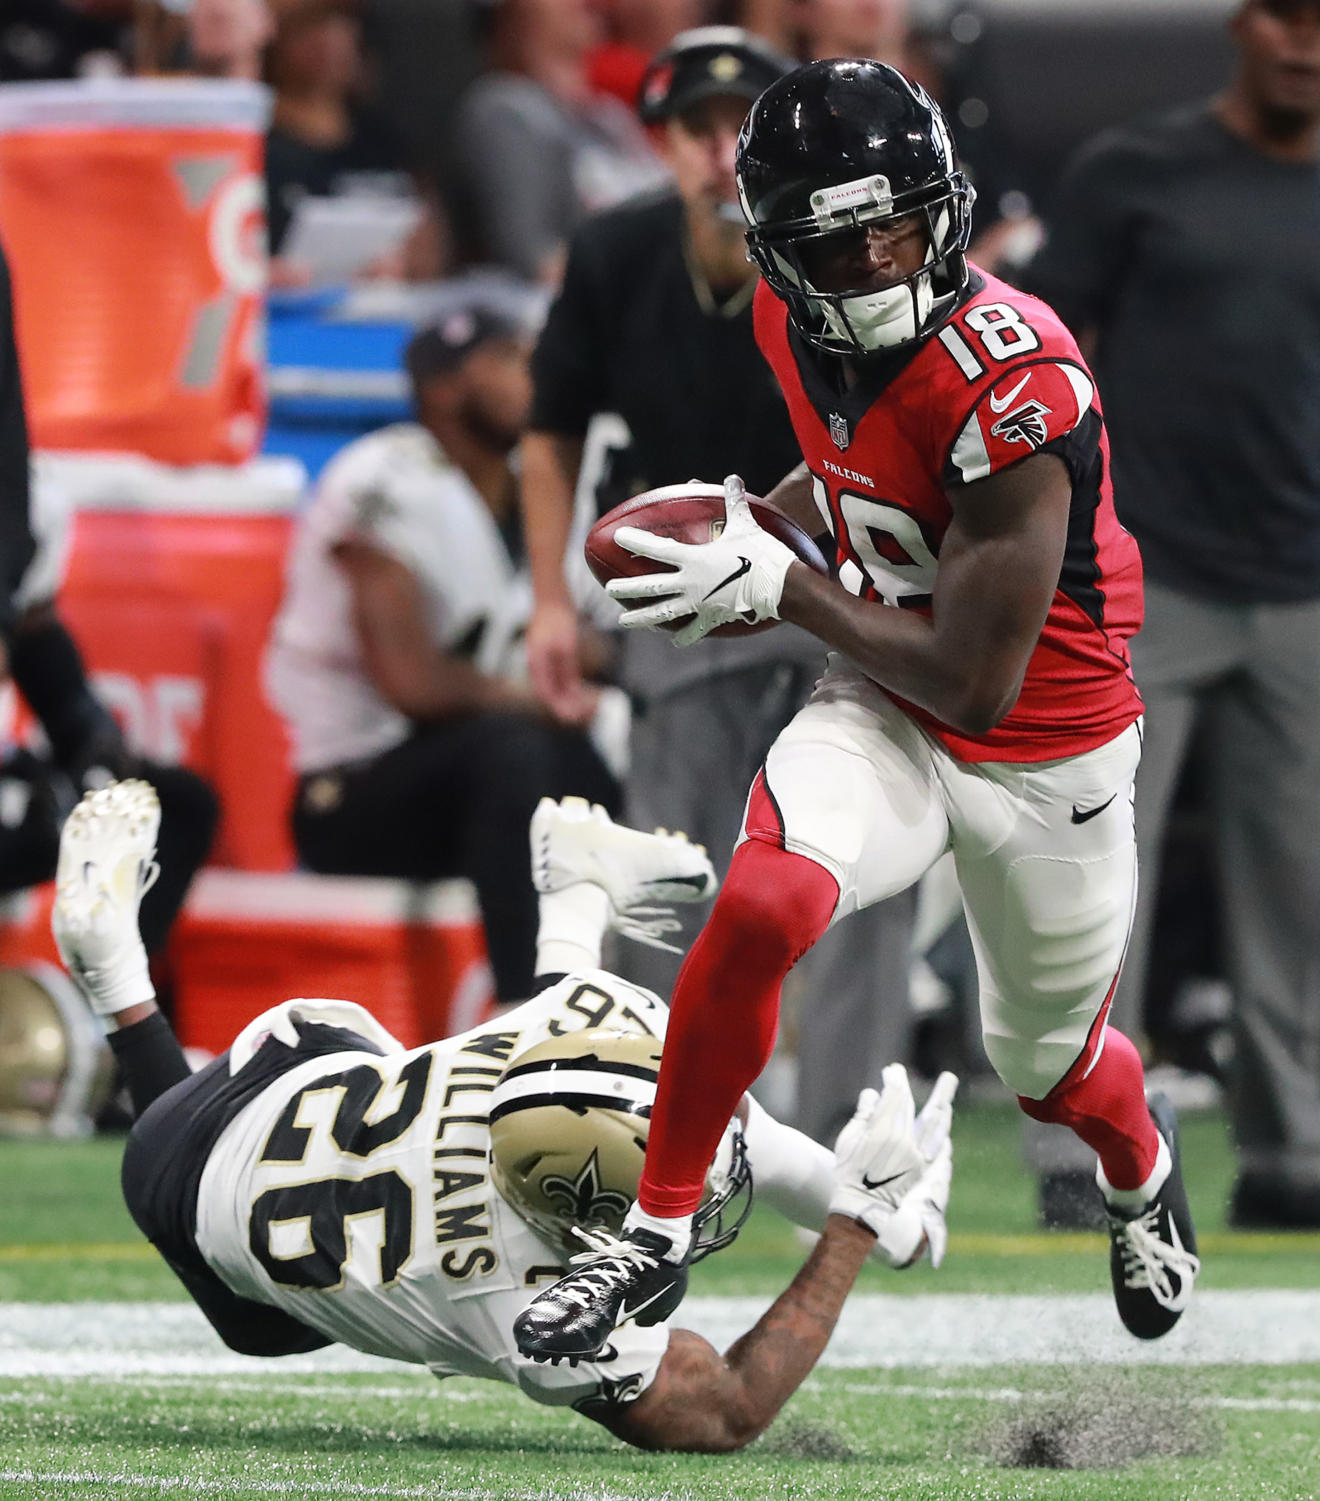 Atlanta Falcons wide receiver Calvin Ridley catches his second touchdown pass of the day past New Orleans Saints defender P.J. Williams during the second quarter on Sunday in Atlanta, GA.